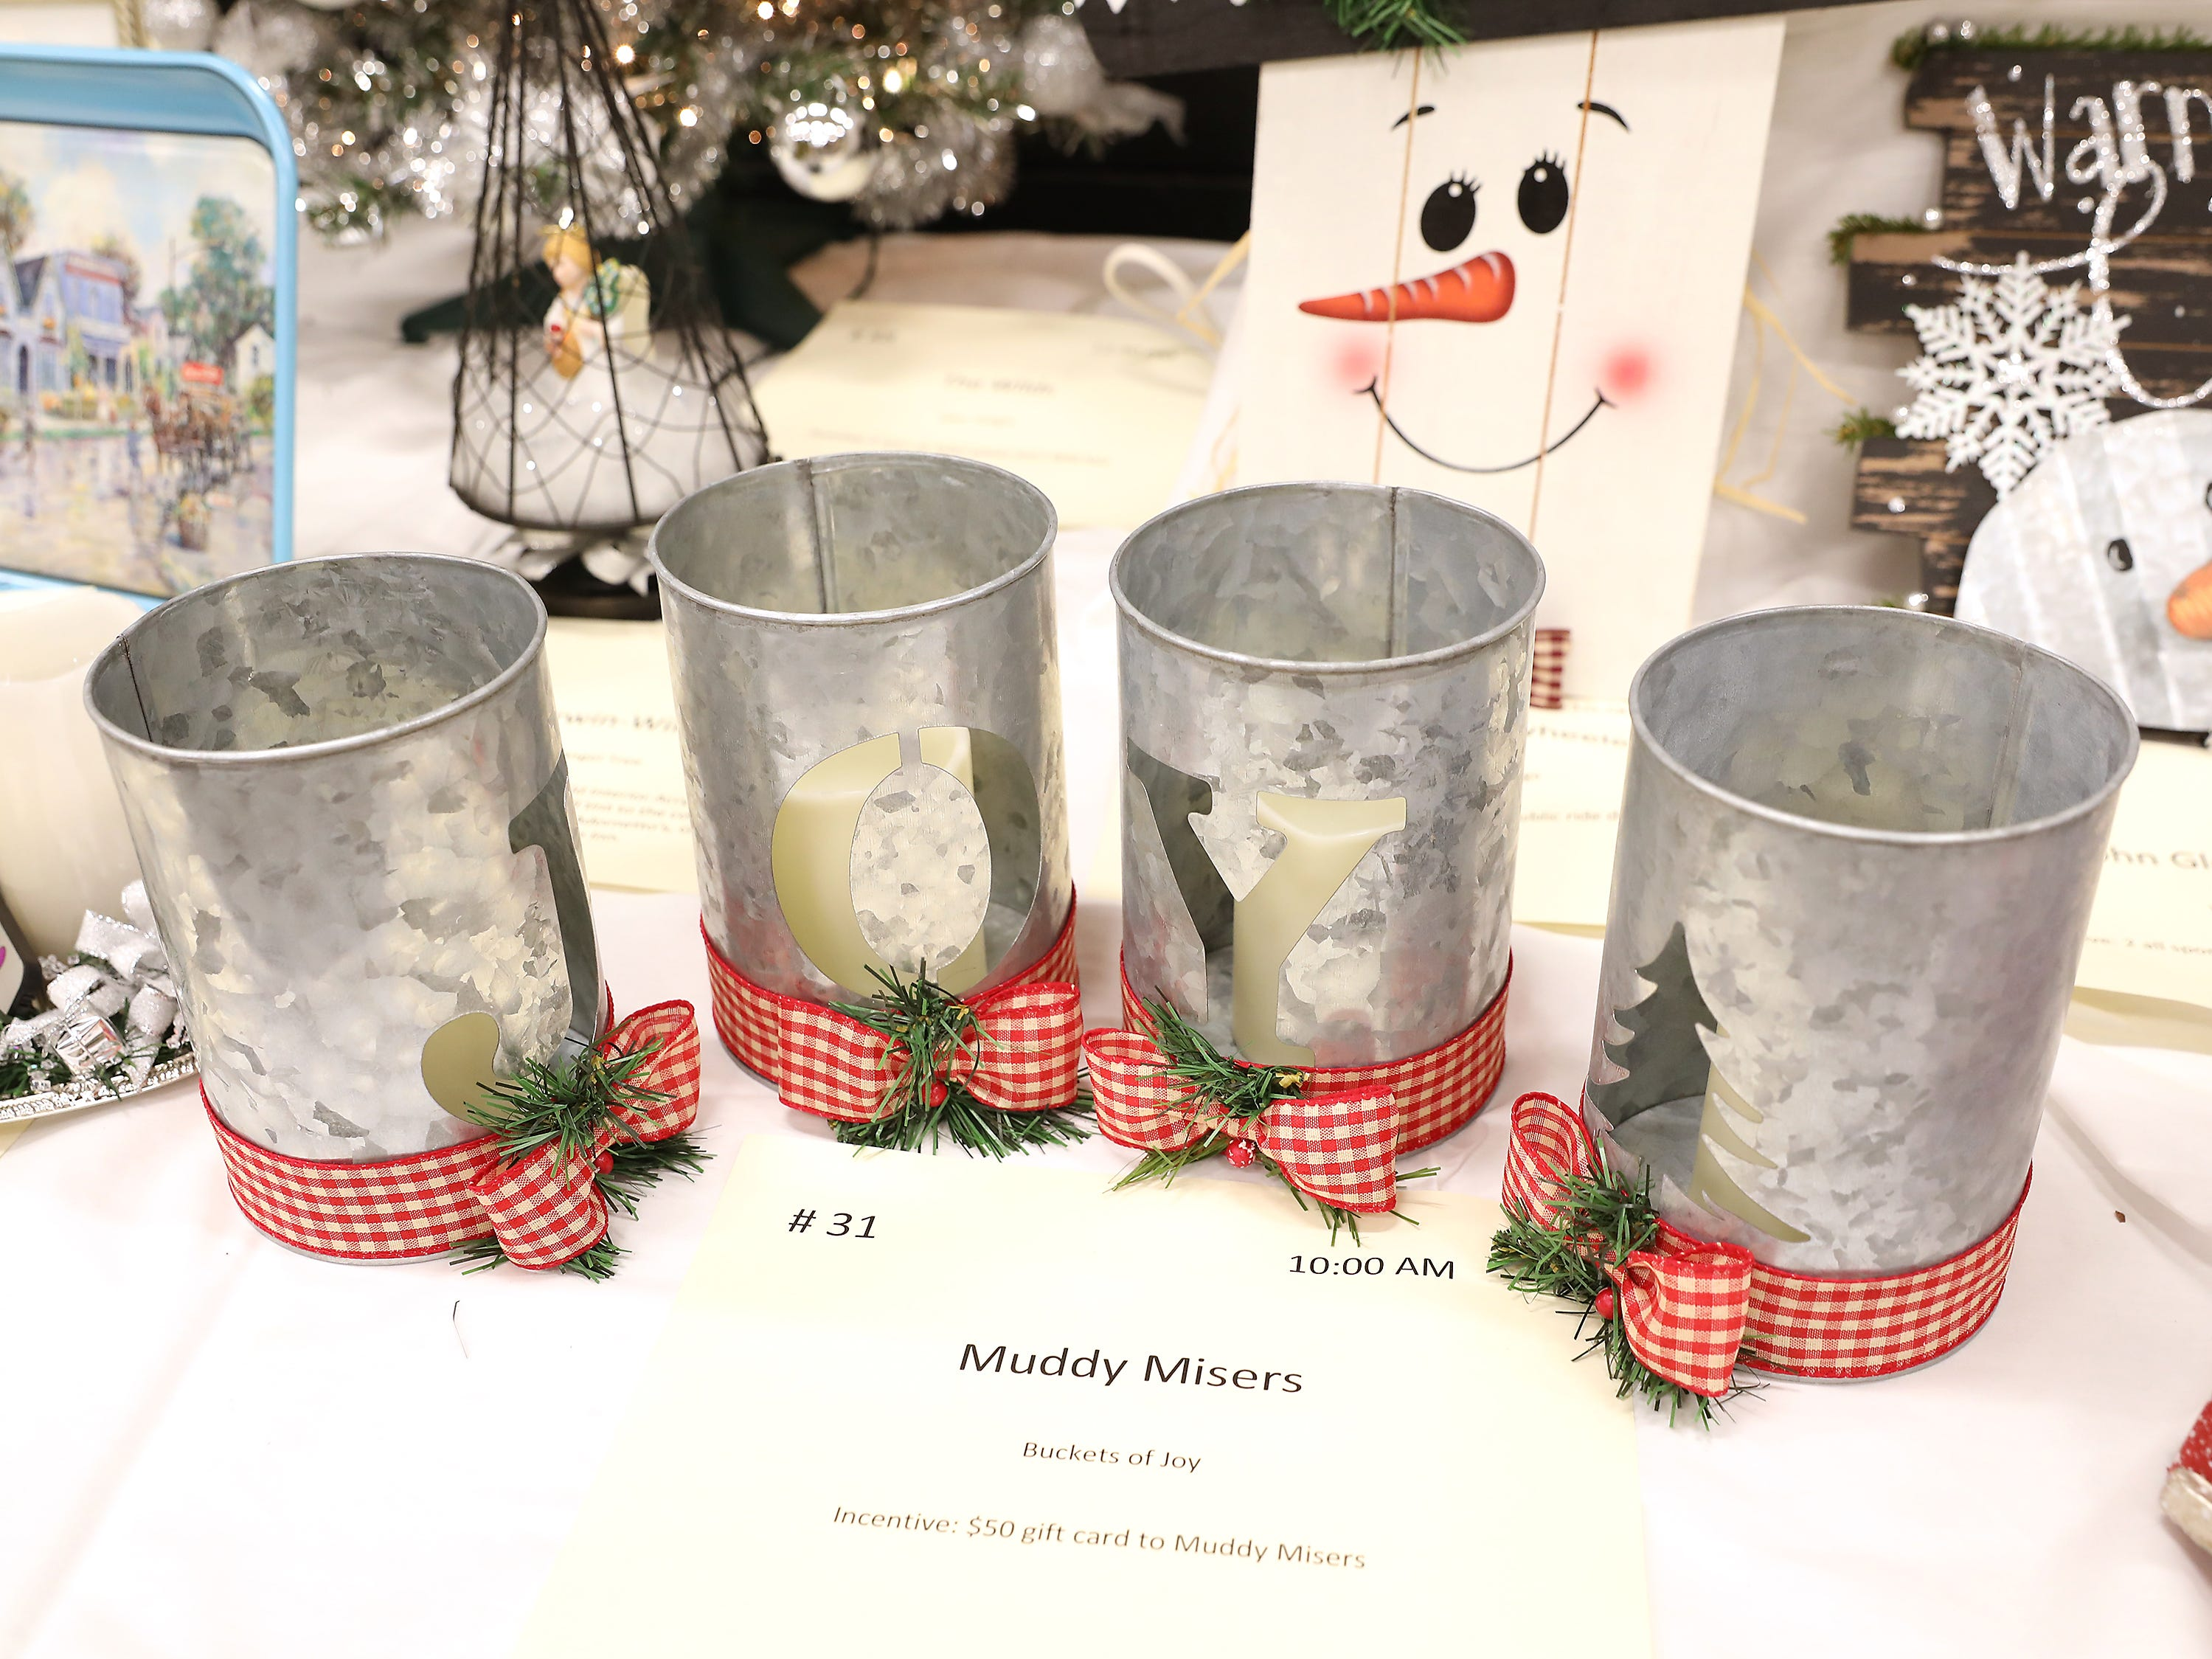 31	10:00 AM	Muddy Misers	Other	Buckets of Joy	A 4 piece galvanized holiday bucket.  Each bucket cutout spelling joy, along with a tree.  Base of the buckets are wrapped in plaid ribbon and pine.		$50 gift card to Muddy Misers